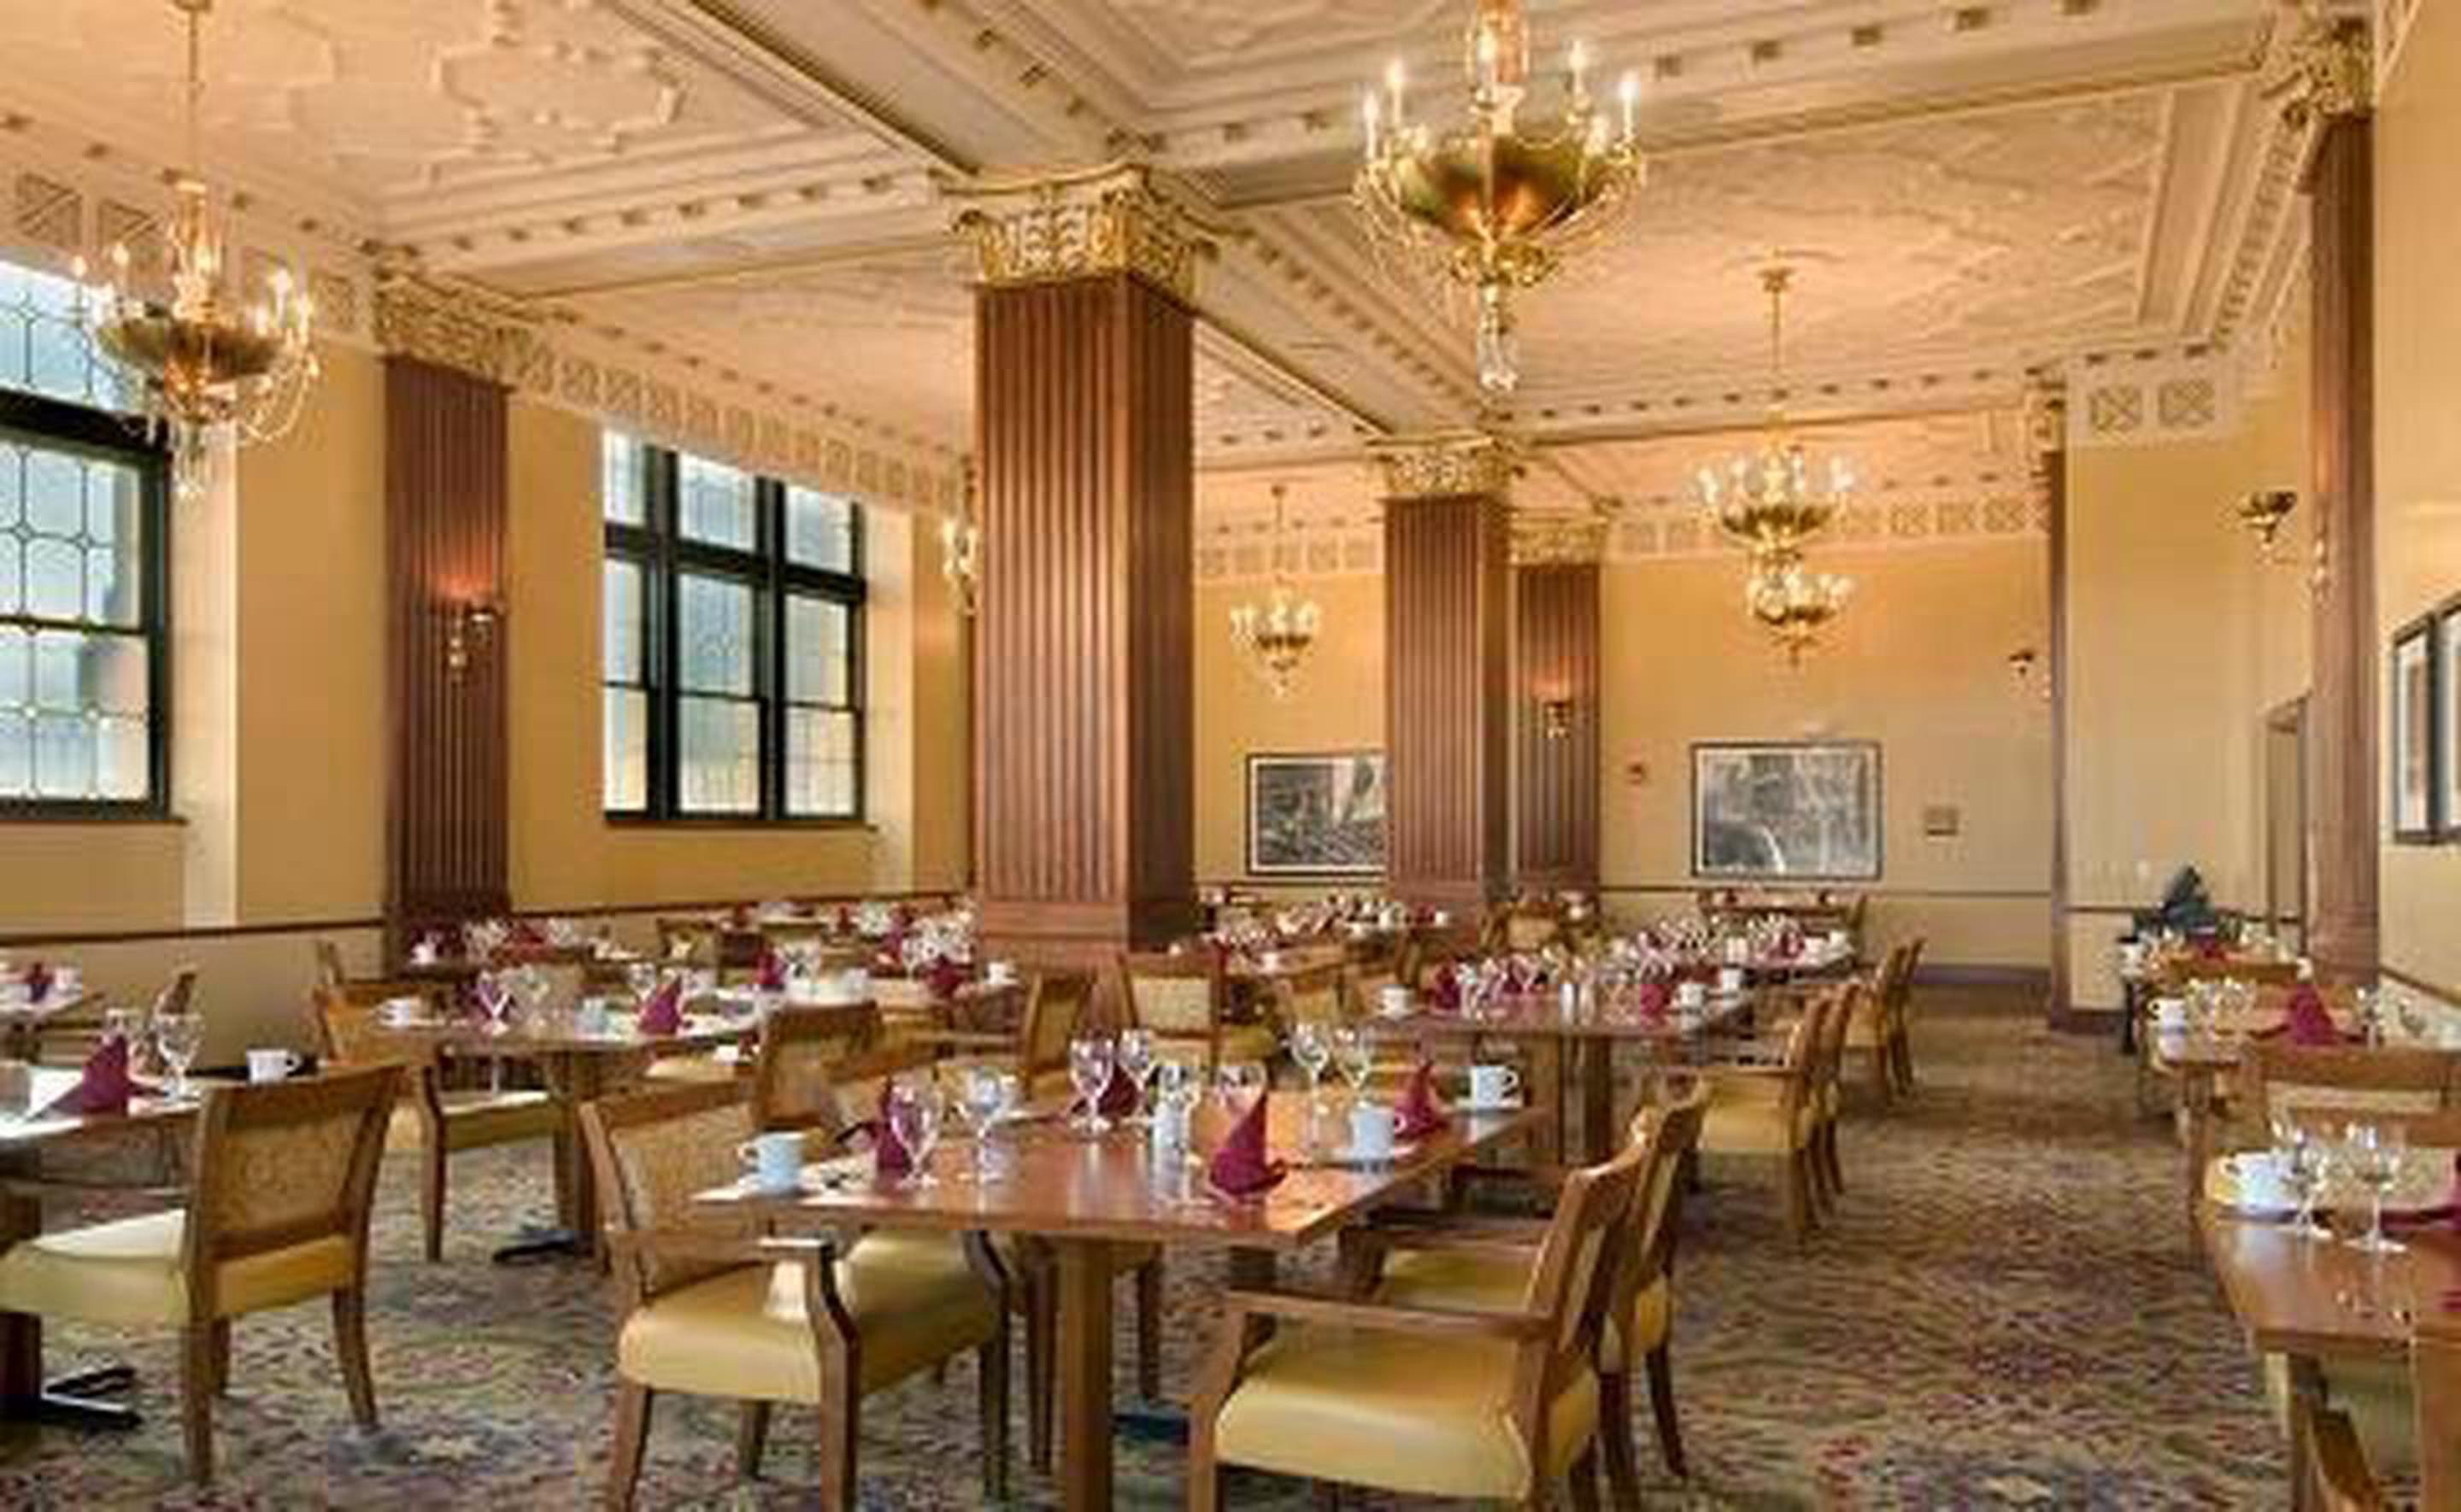 Delicious DiningThere is something for every palate at the Hotel President. The Walnut Room for breakfast, Providence for dinner, and a nightcap in the same lounge that once hosted the likes of Sinatra, Benny Goodman, and Glen Miller.